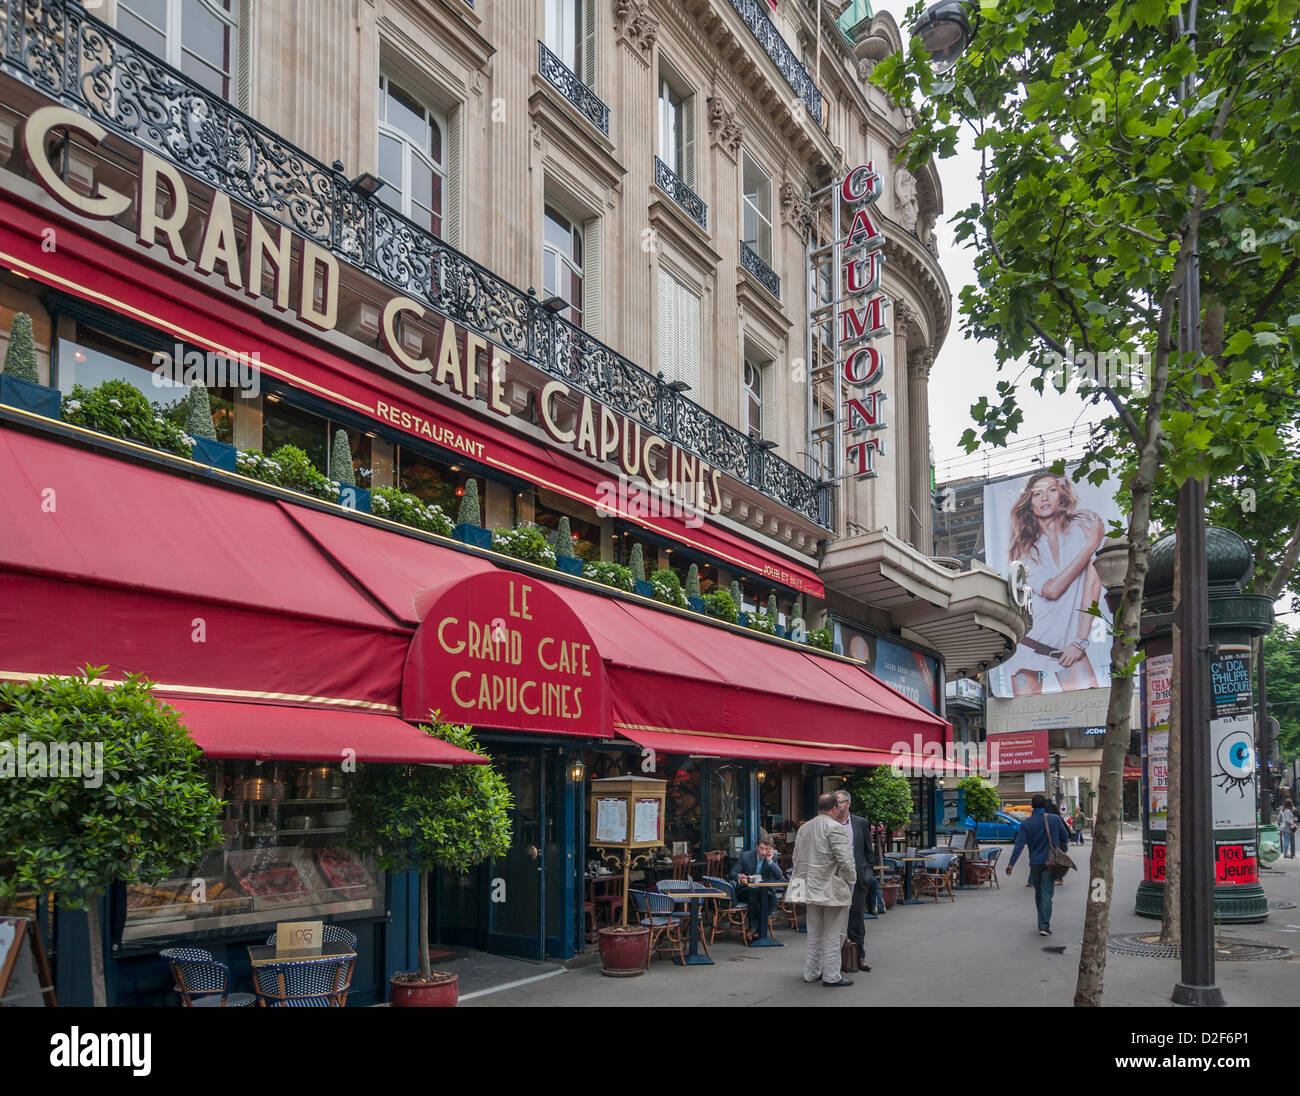 Le Grand Cafe Capucines in Paris,france Stock Photo: 53195017 - Alamy